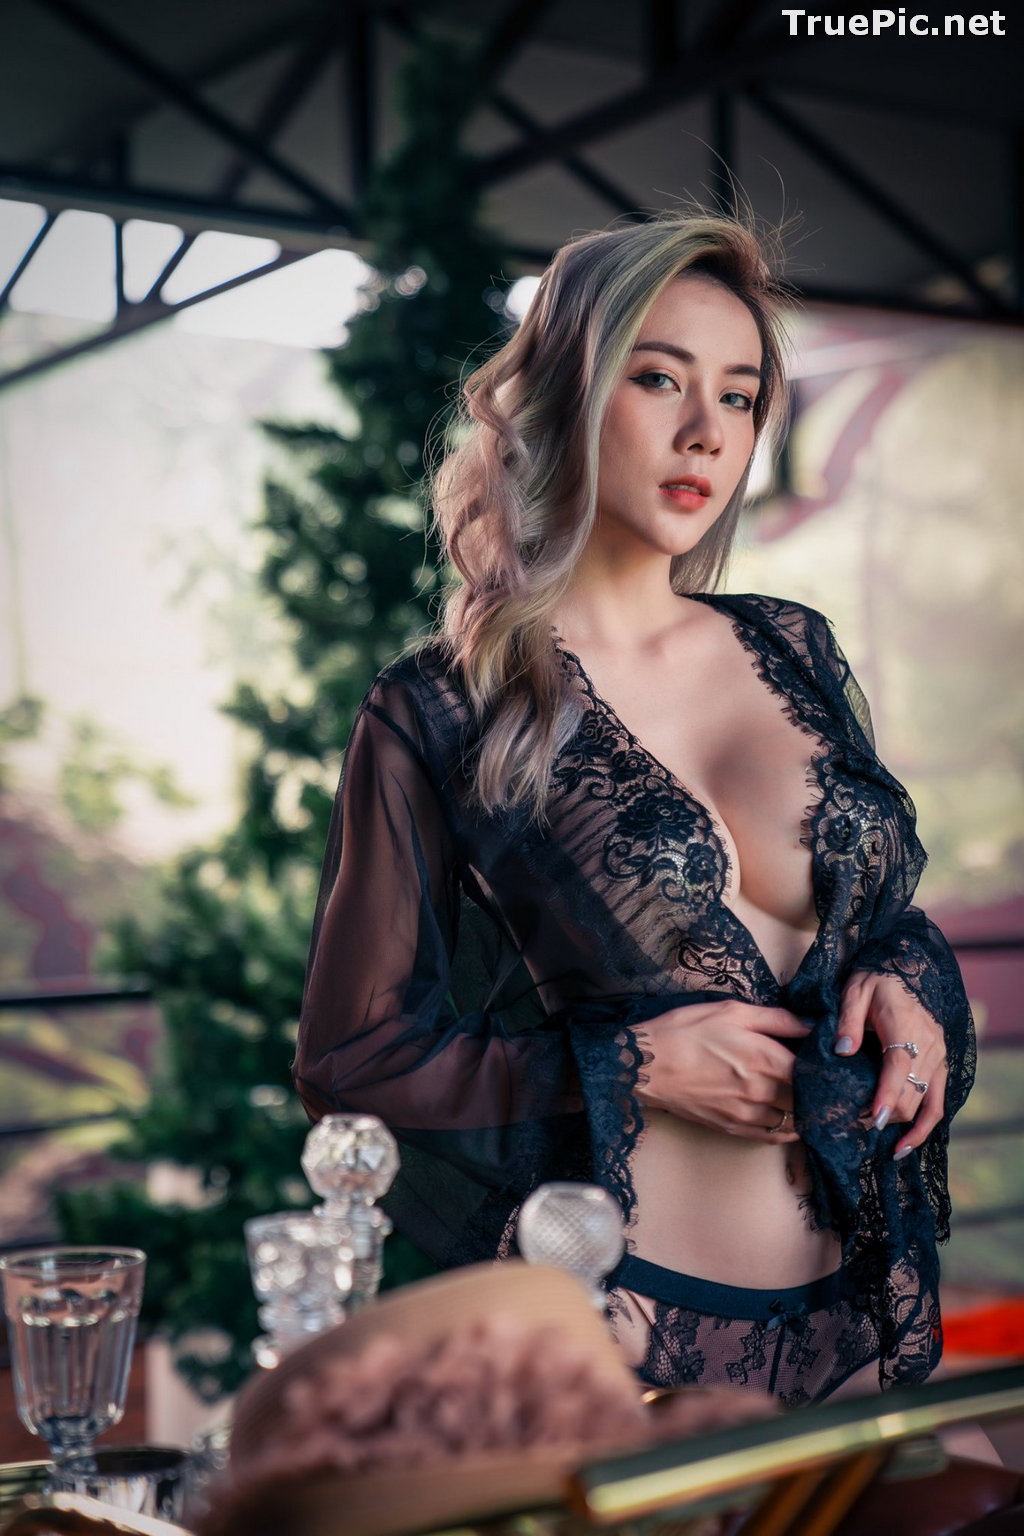 Image Thailand Model – Soraya Upaiprom (น้องอูม) – Beautiful Picture 2021 Collection - TruePic.net - Picture-72